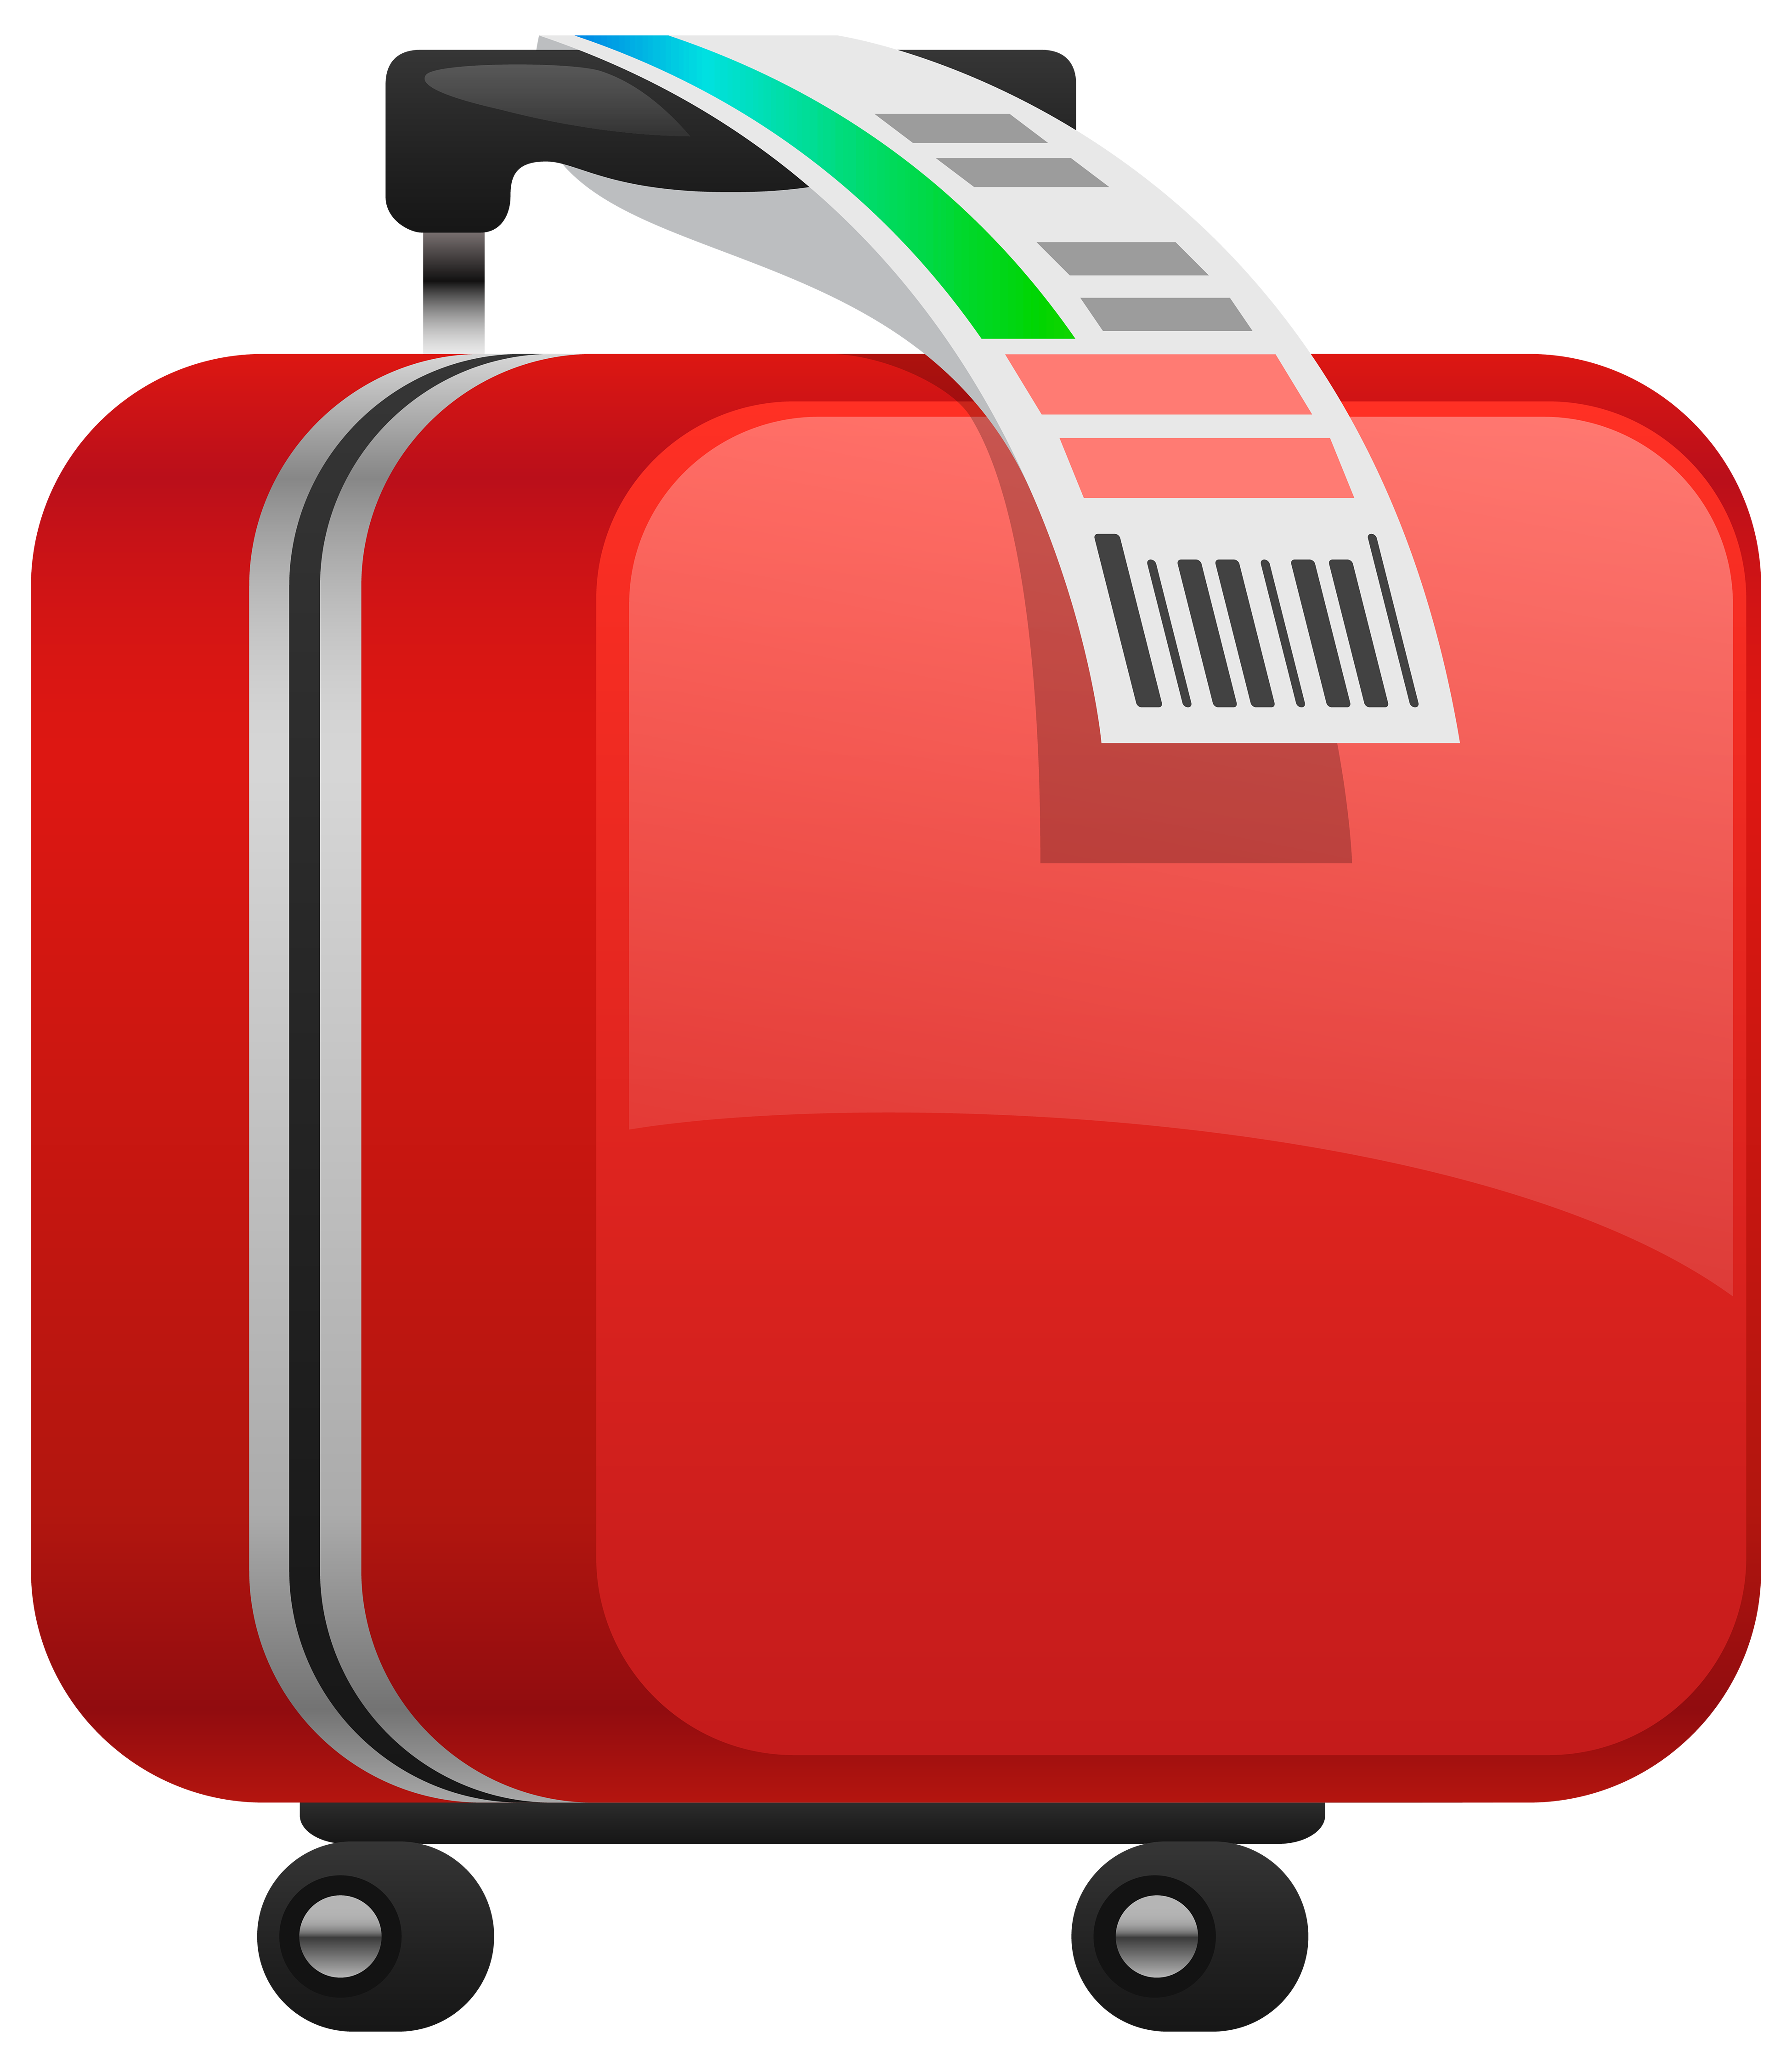 Suitcase emoji png. Checked red clipart image